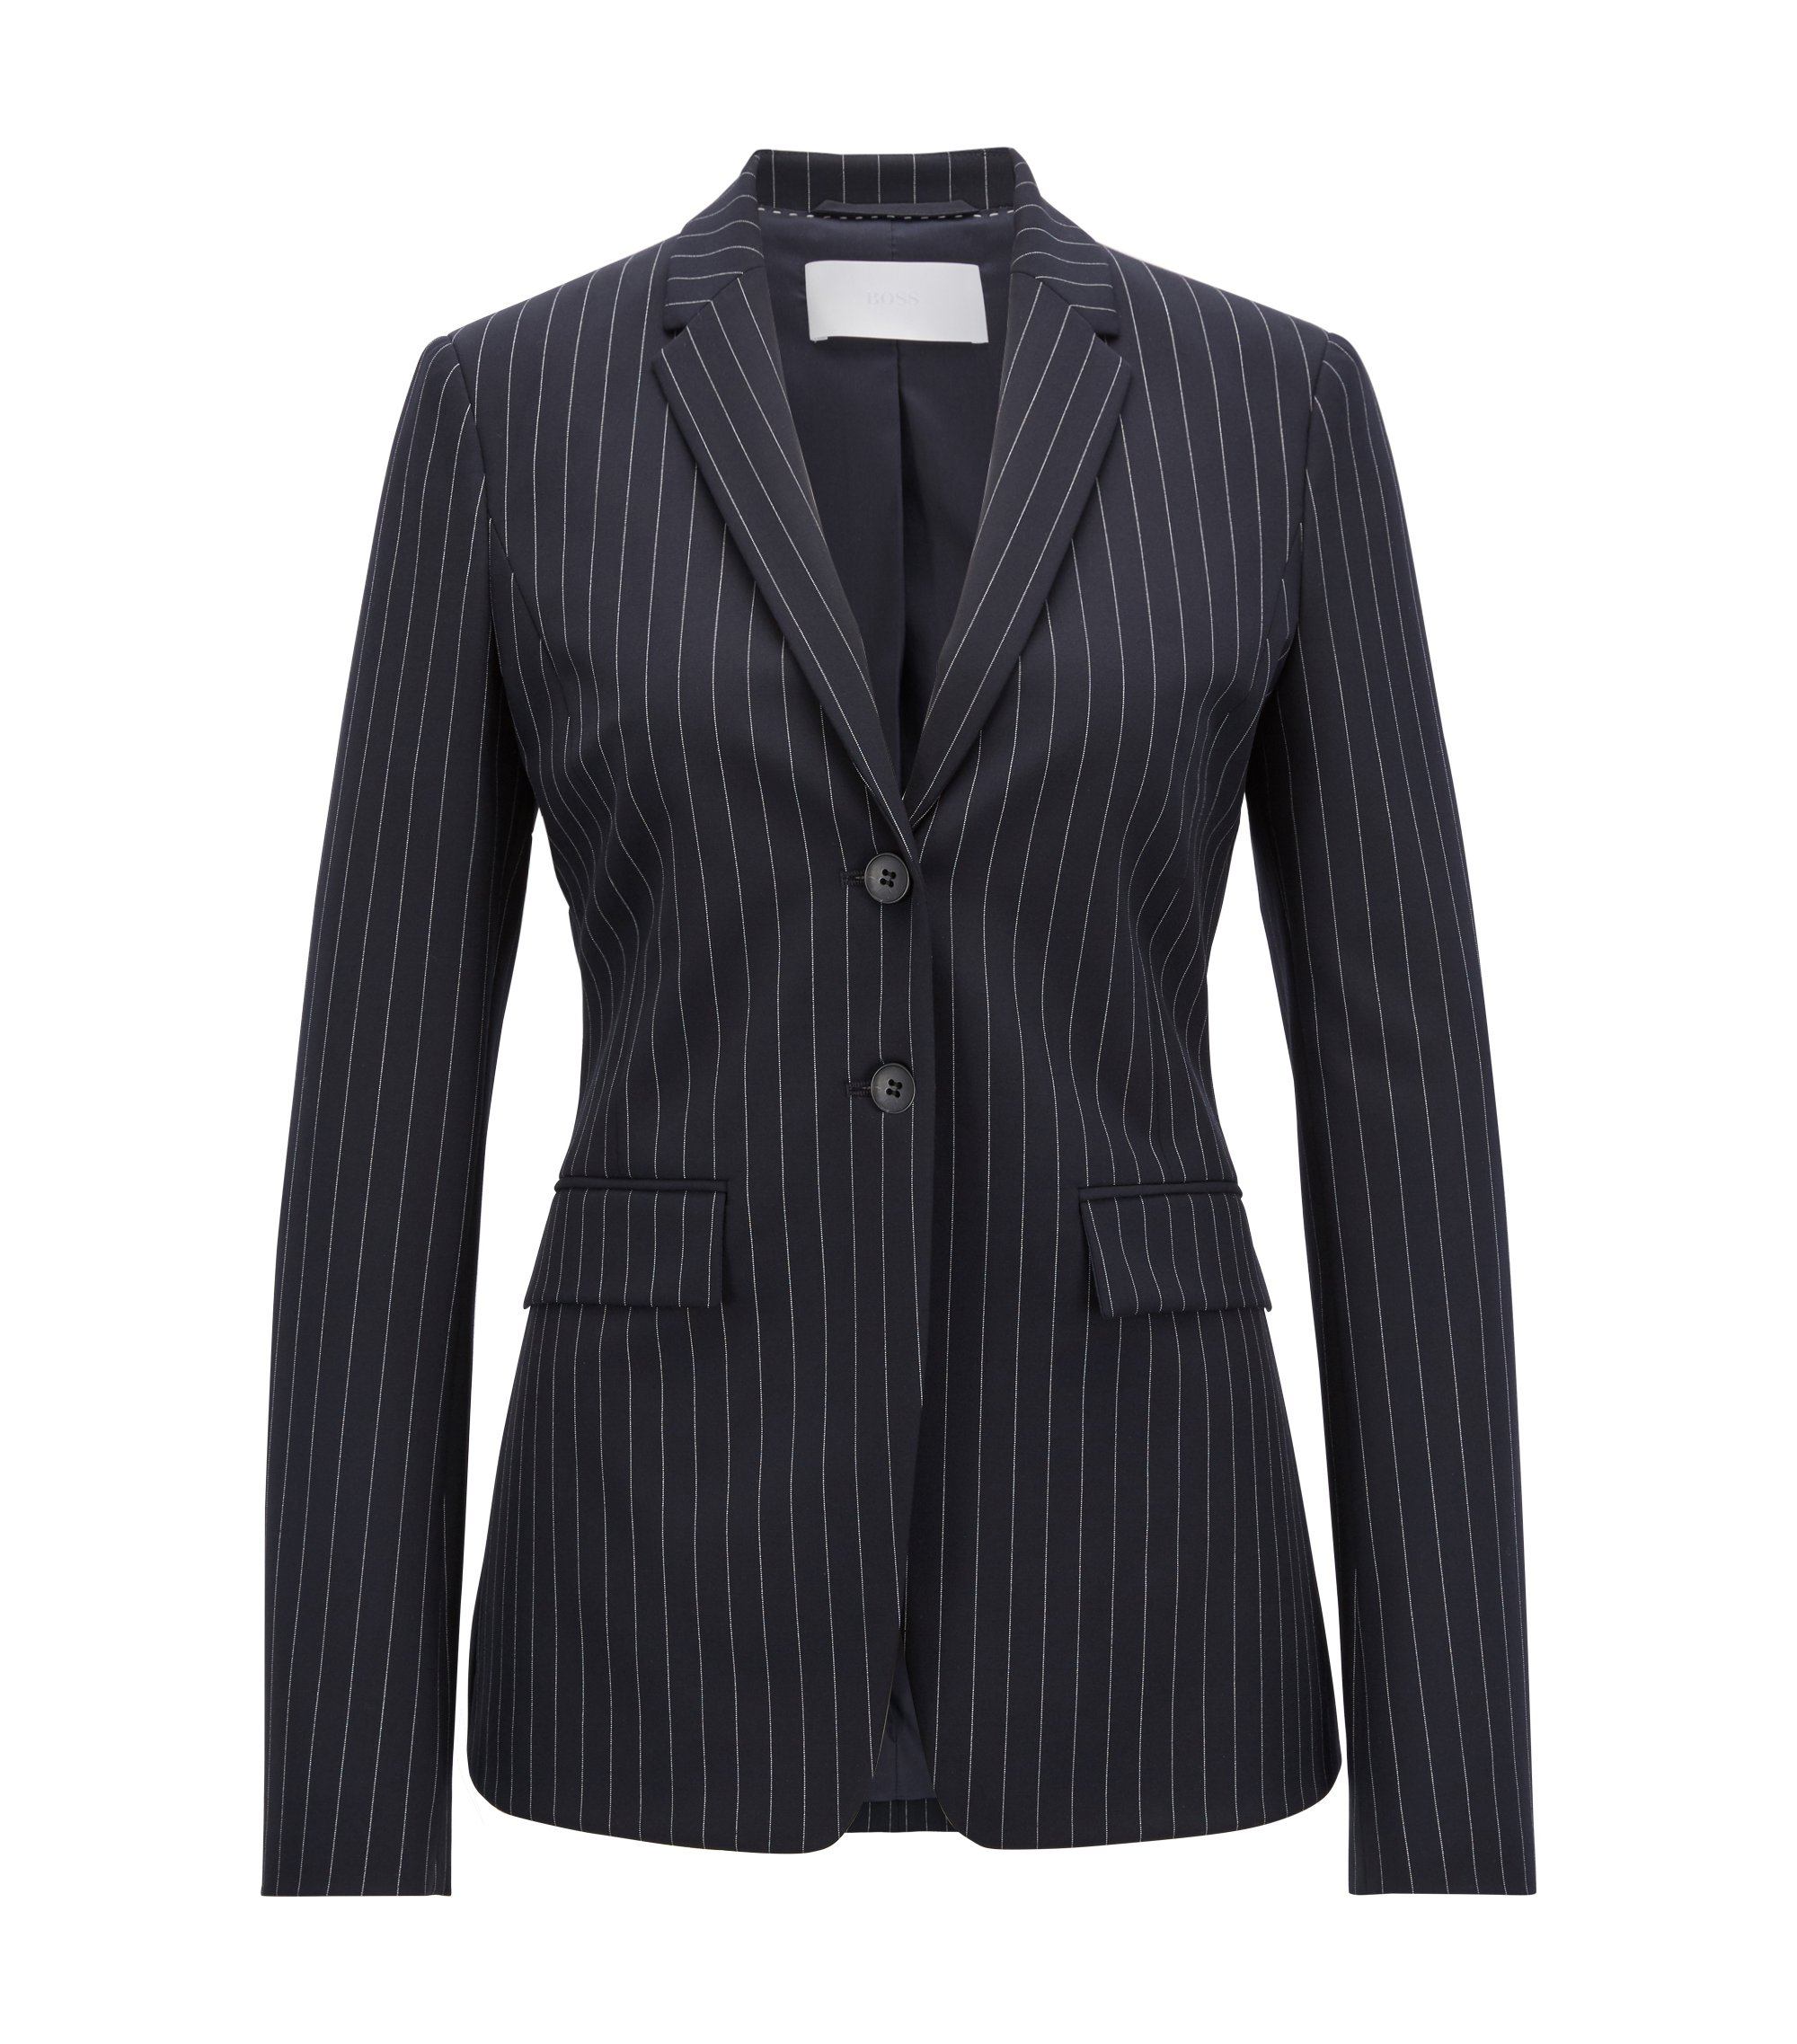 Blazer Regular Fit en tissu stretch à rayures tennis, Fantaisie